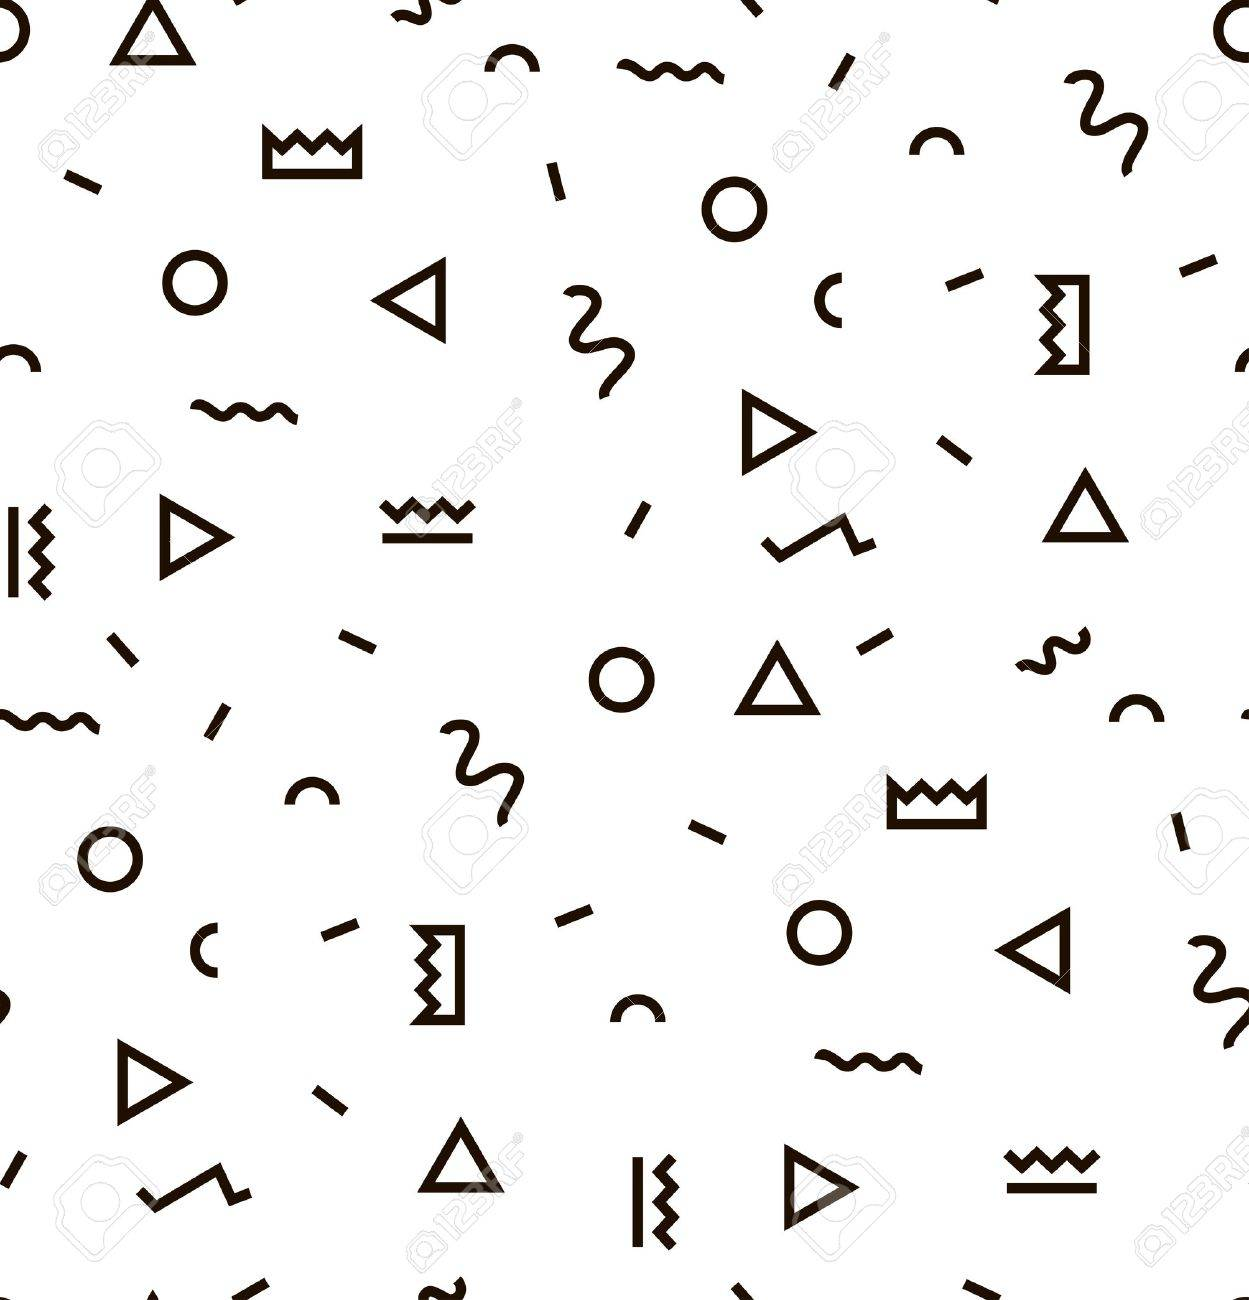 Geometric Vector pattern with black and white. Form a triangle, a line, a circle. Hipster fashion Memphis style. - 55516270